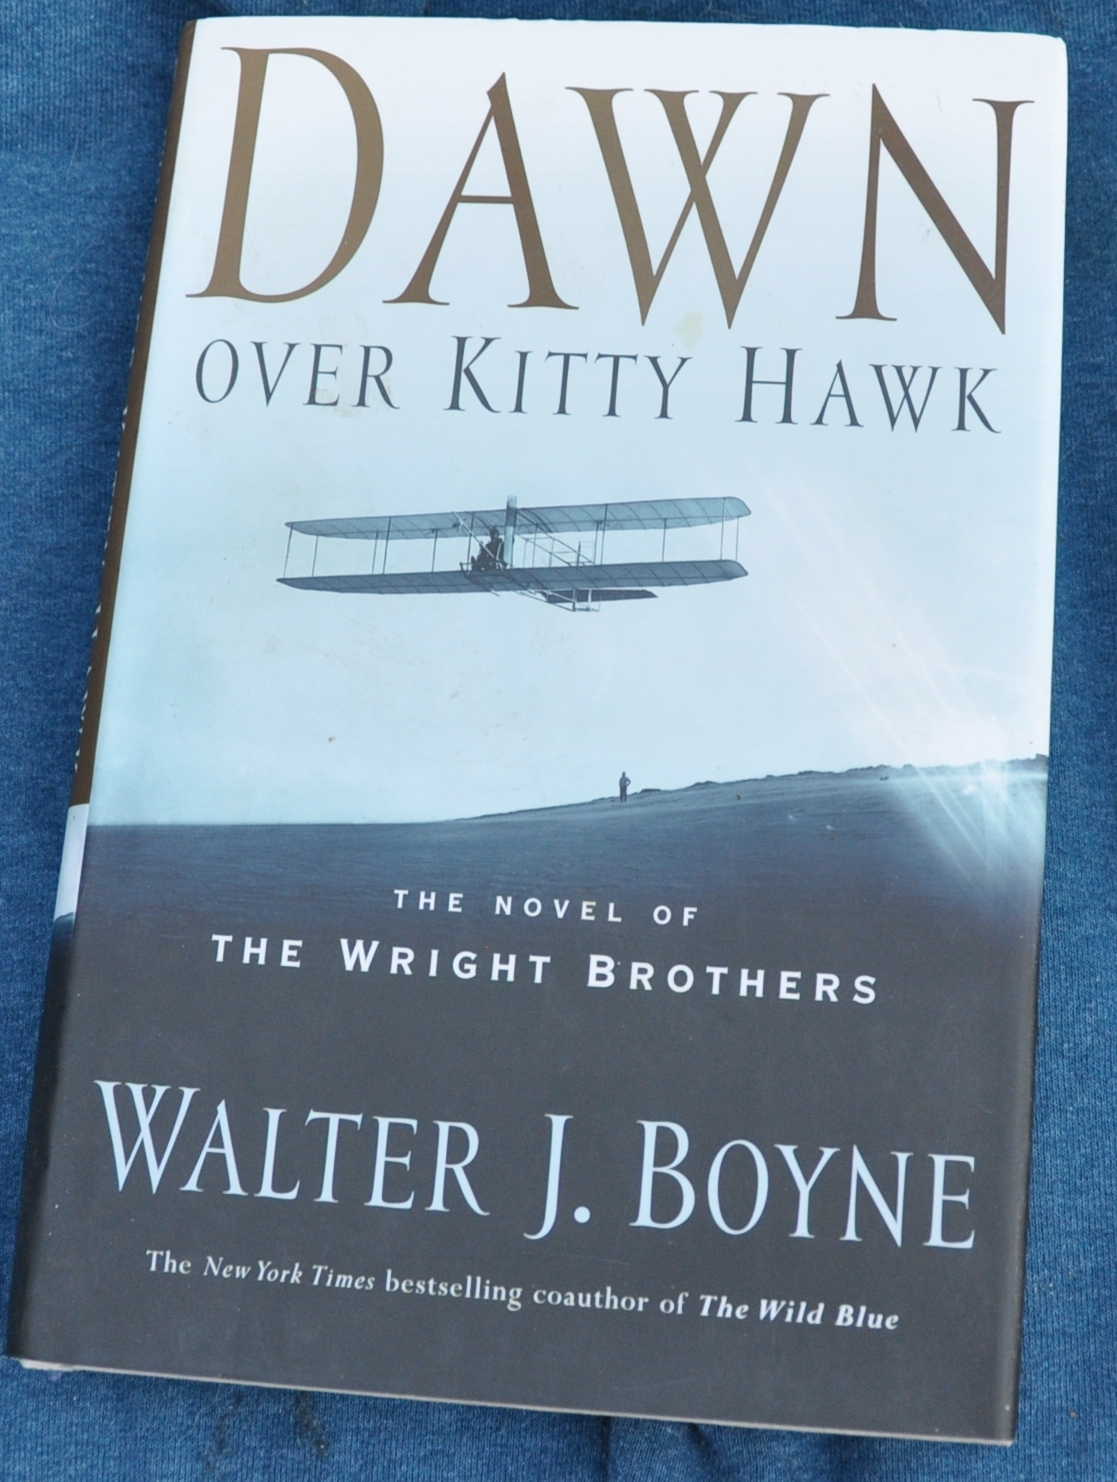 Dawn over kitty hawk   cover